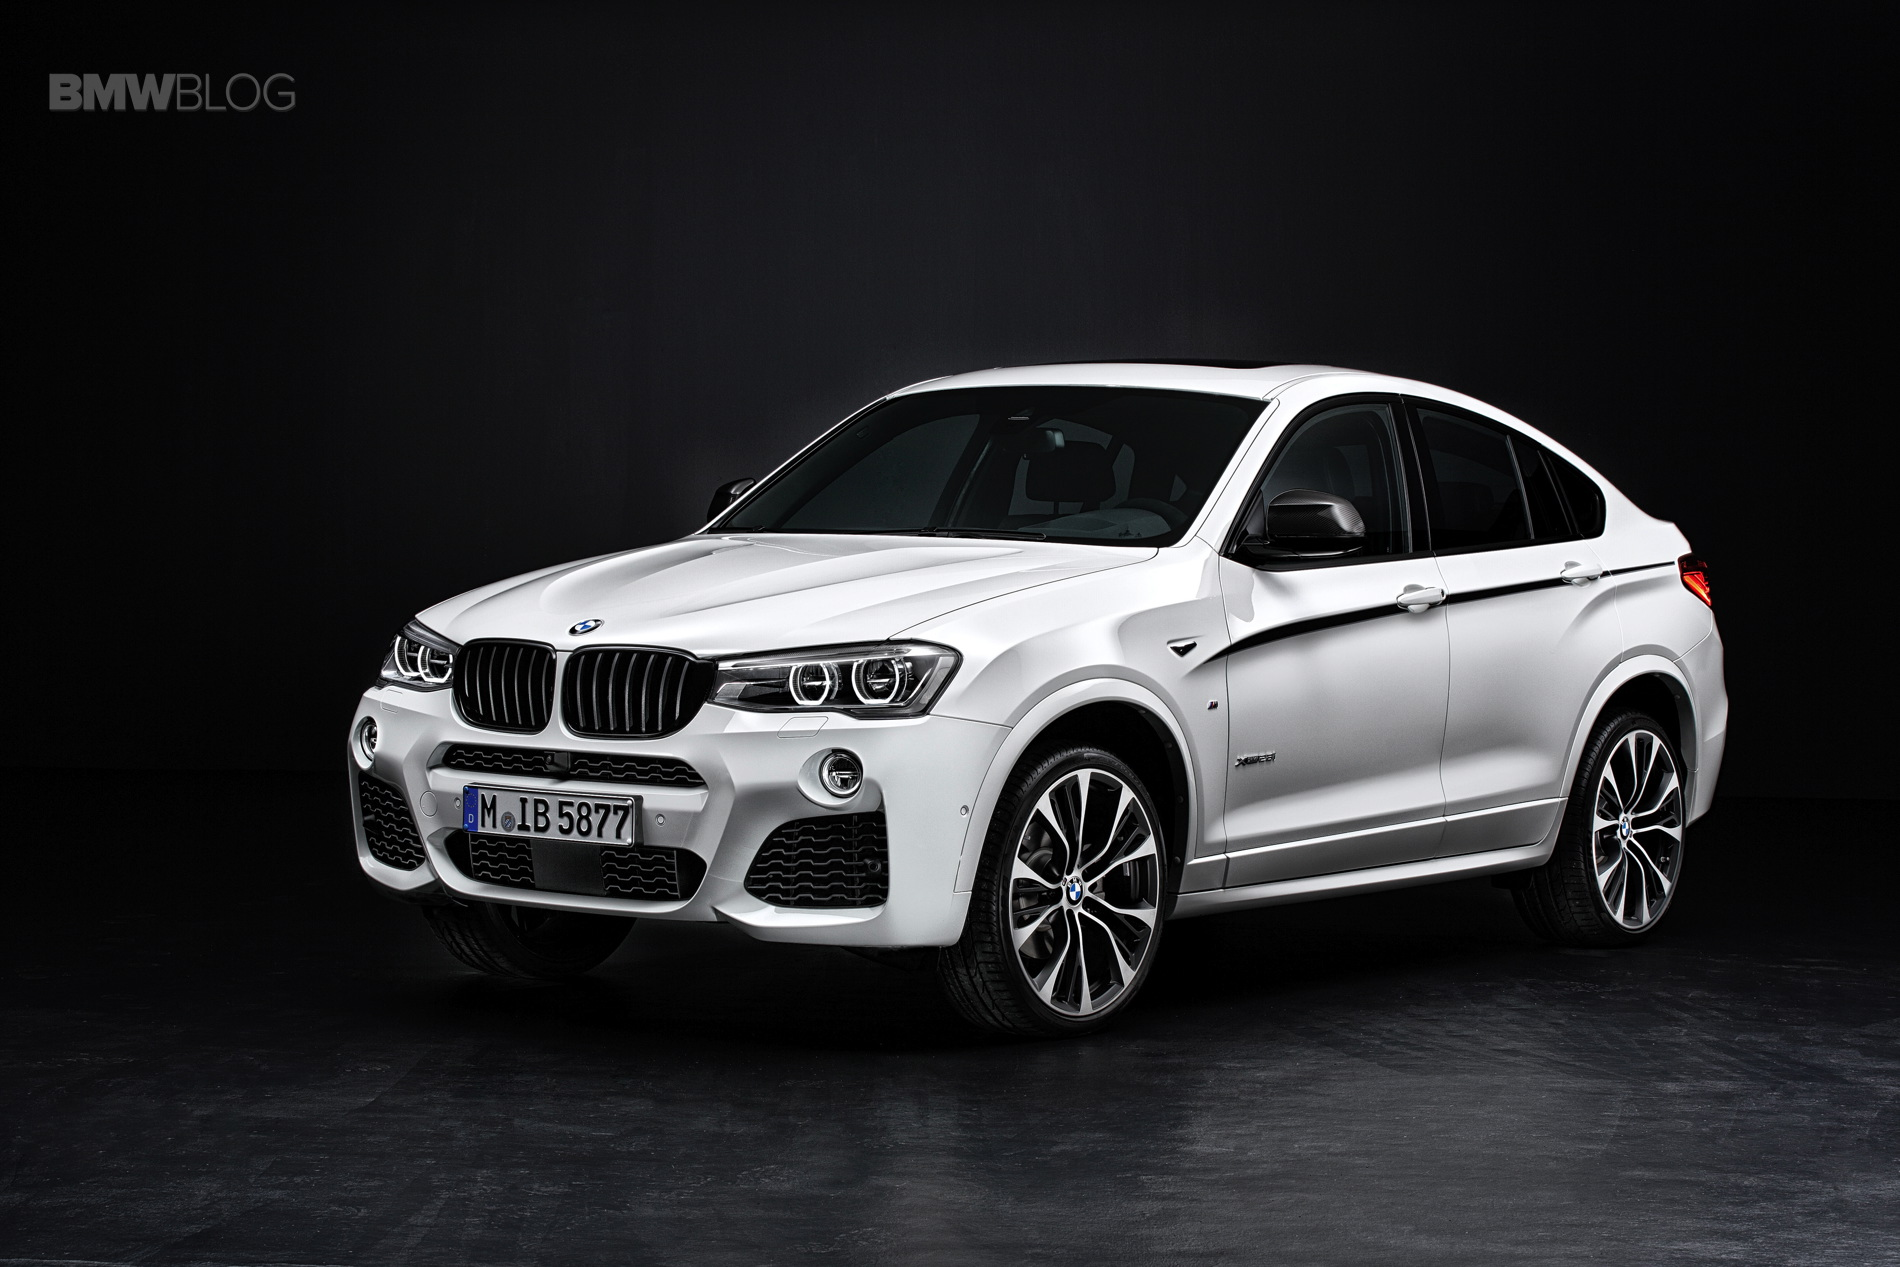 bmw x3 and bmw x4 m performance power kit and m performance parts. Black Bedroom Furniture Sets. Home Design Ideas